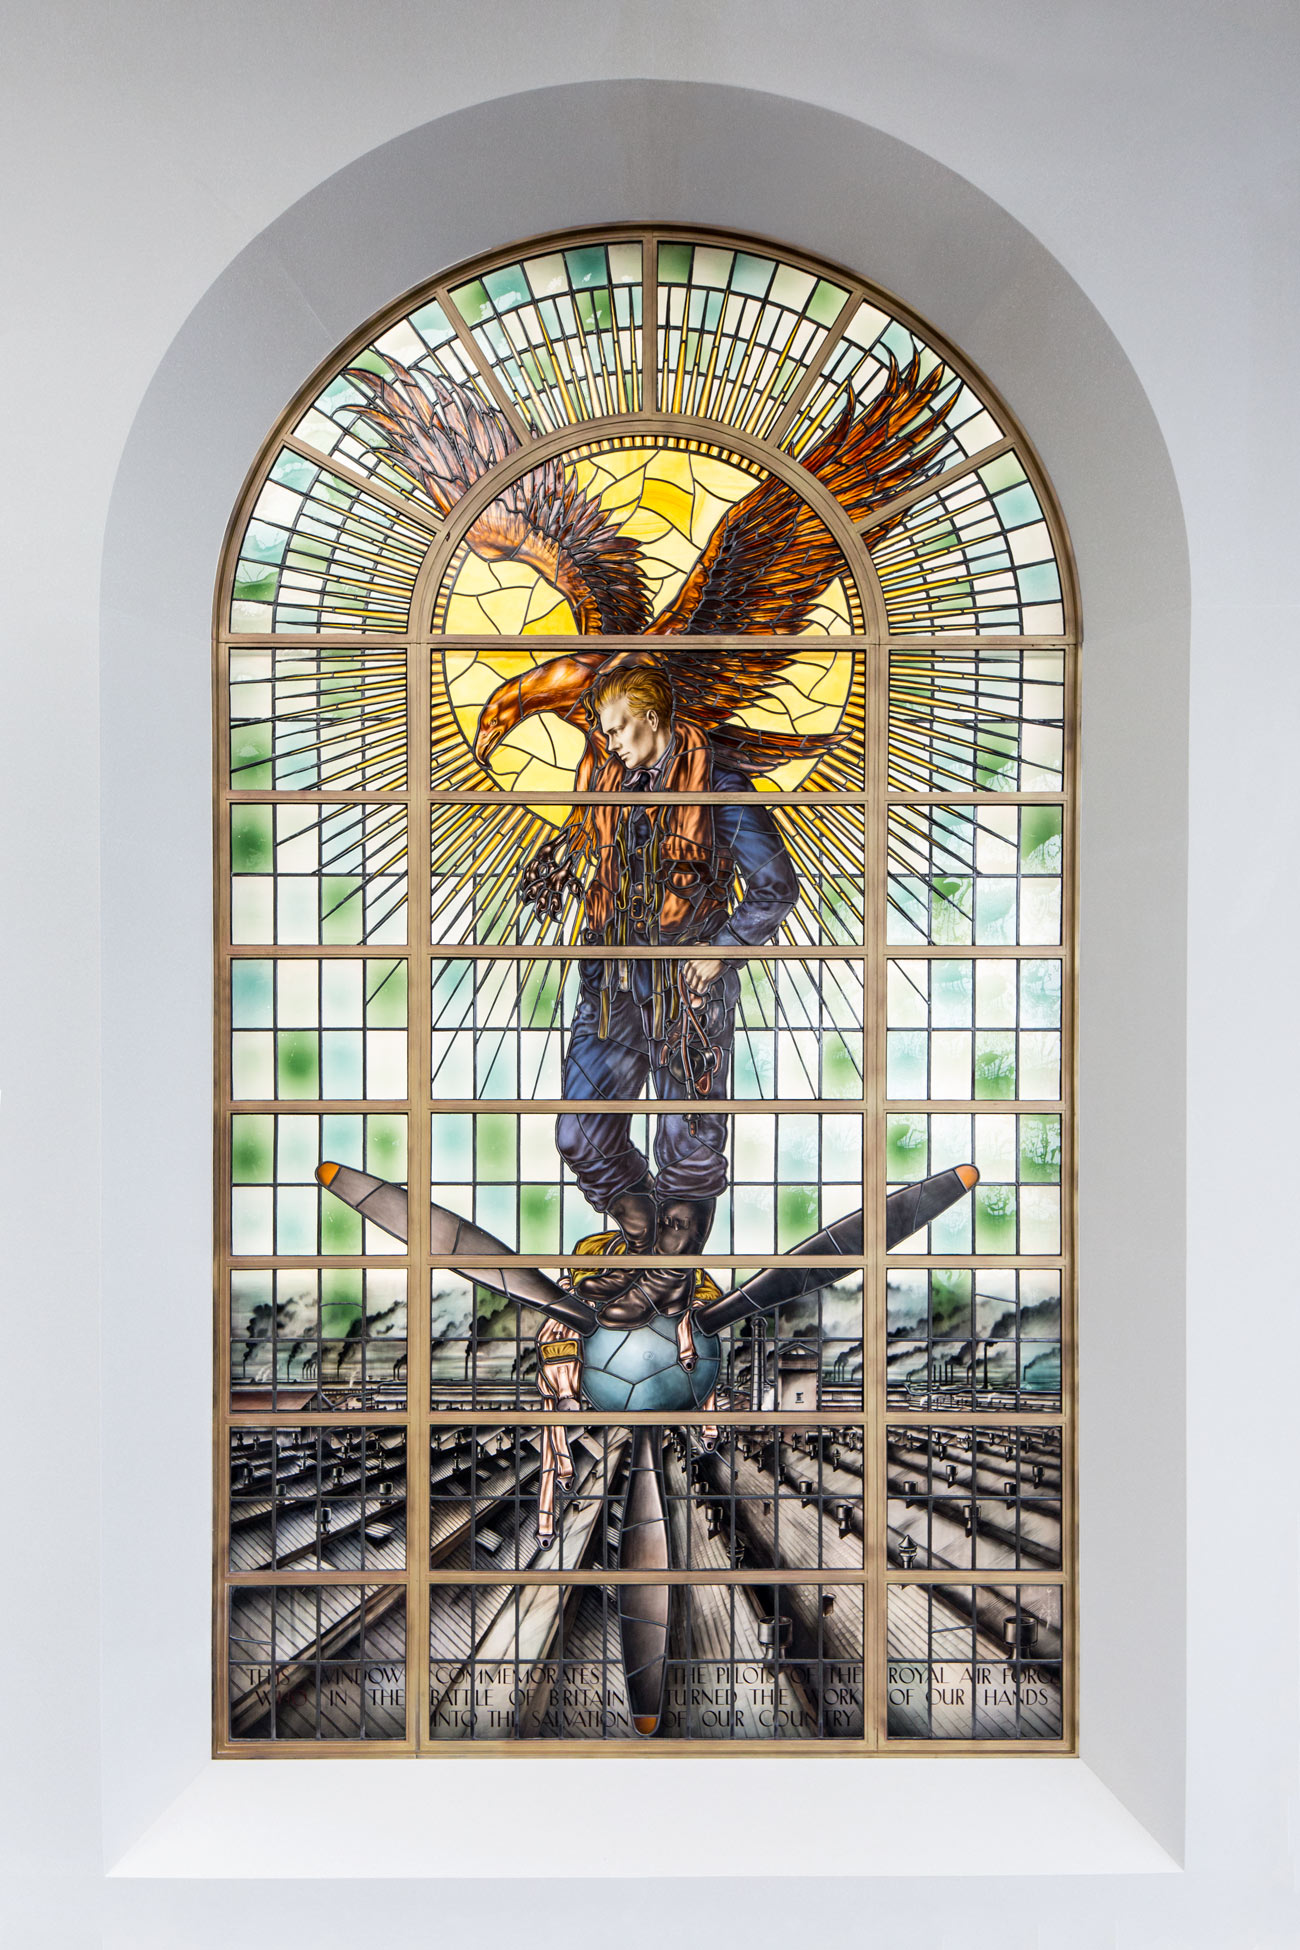 High resoltion photograph of the Rolls-Royce Battle of Britain memorial stained-glass window in Derby